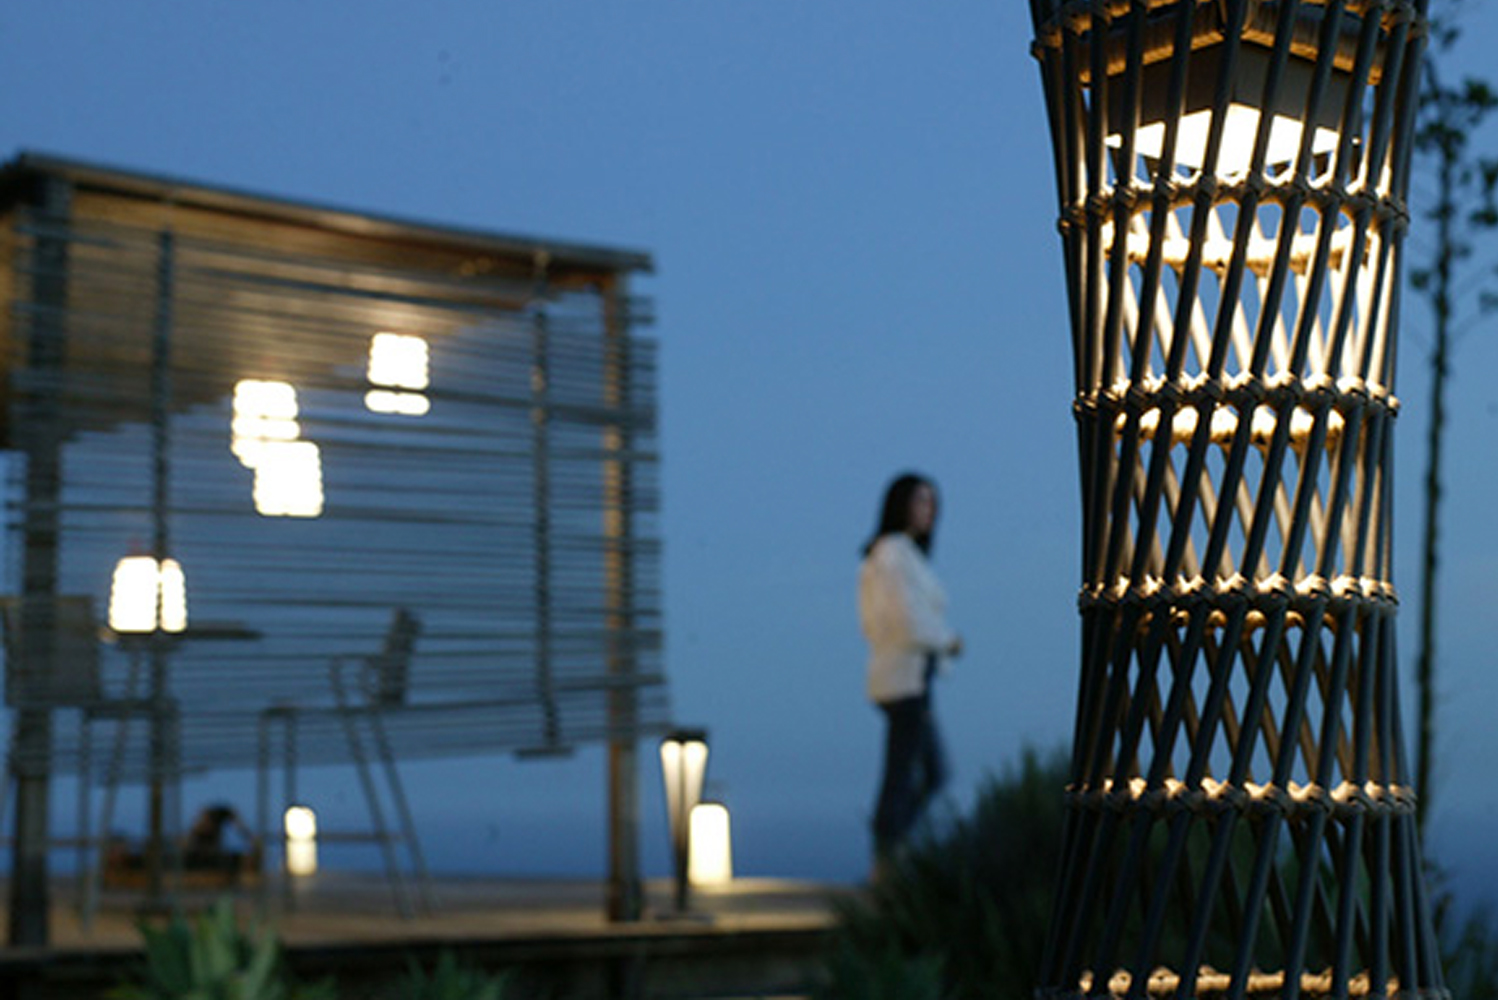 Les Jardins Solar Lighting introduced Wharf, the latest in its LED statement-lighting collection.